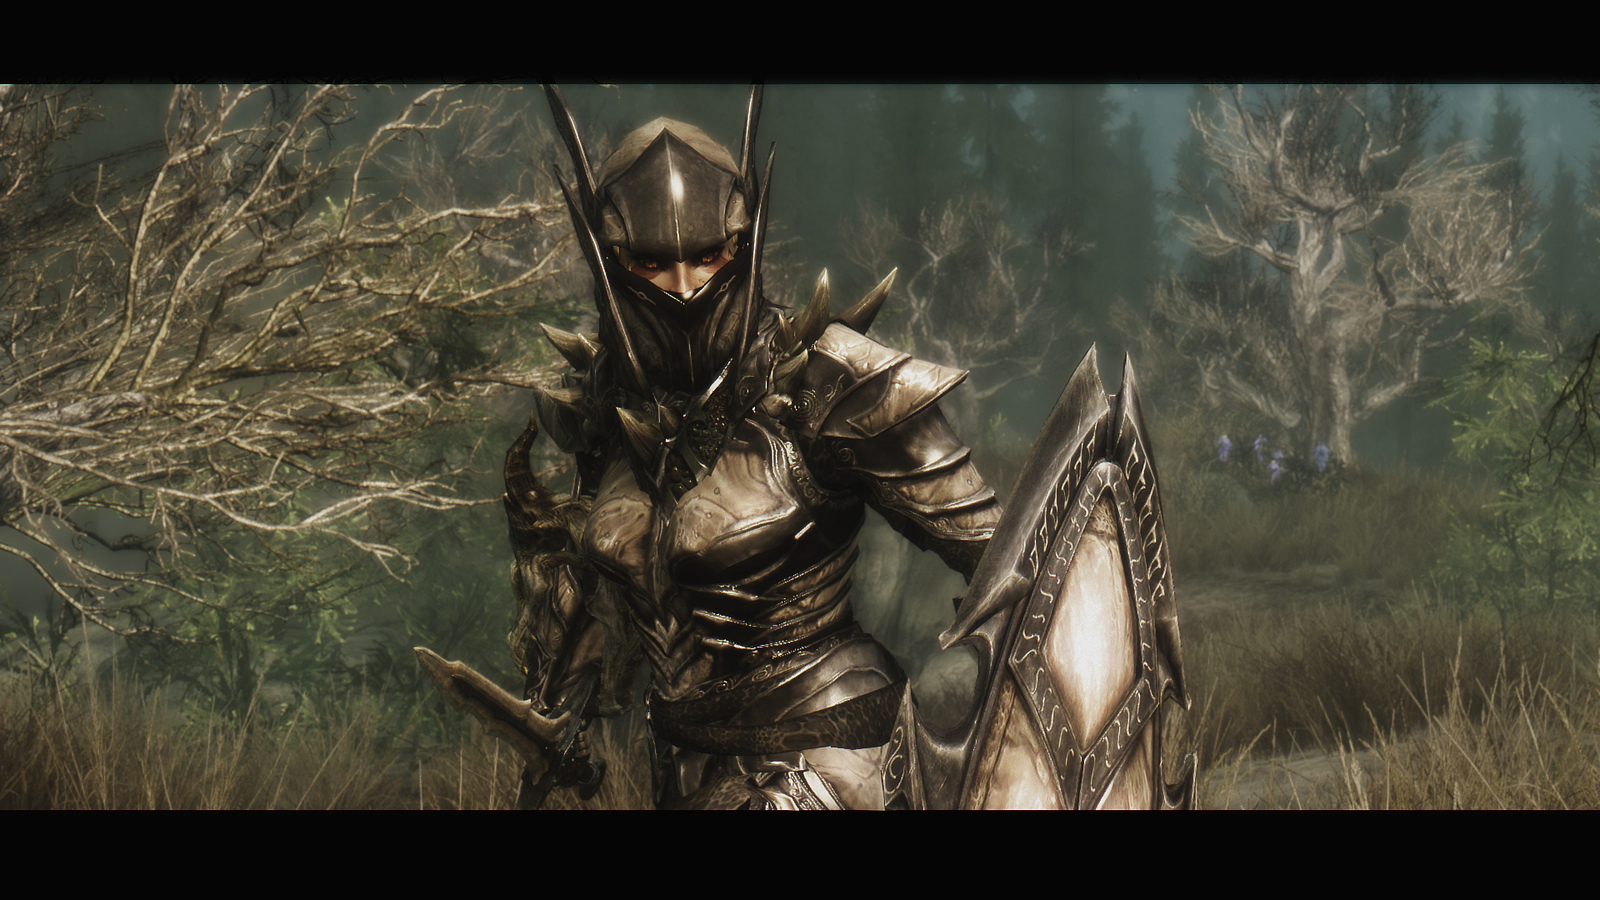 Steam Workshop Dragon Knight Armor Do you feel like skyrim daedric armor is a bit underwhelming and not spiky or demonic enough? steam workshop dragon knight armor